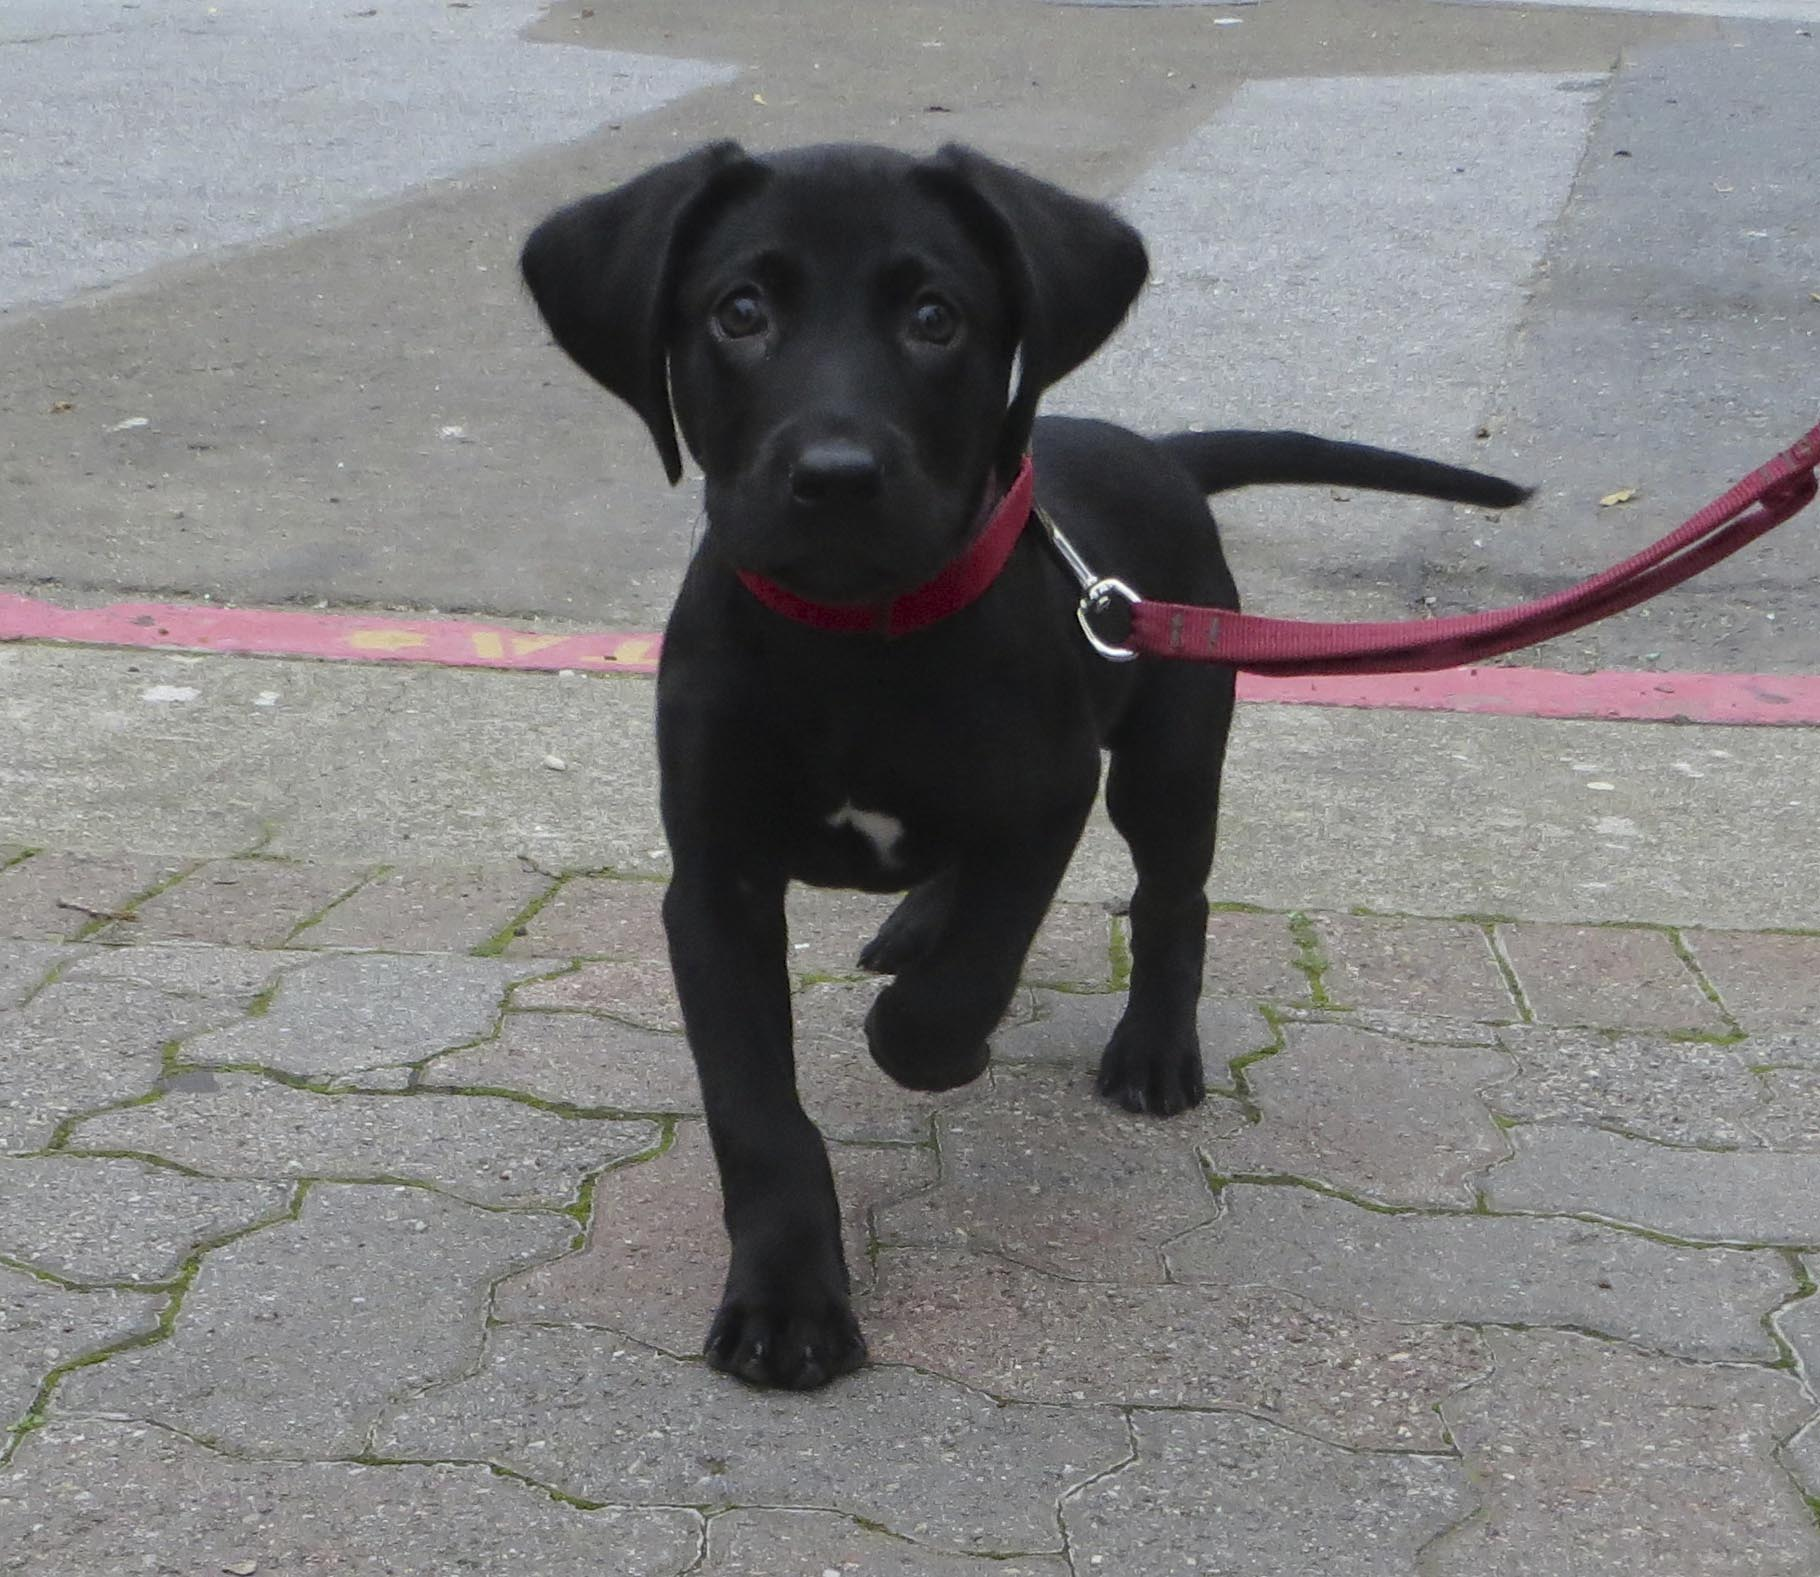 Labrador Retriever Average Size and Weight